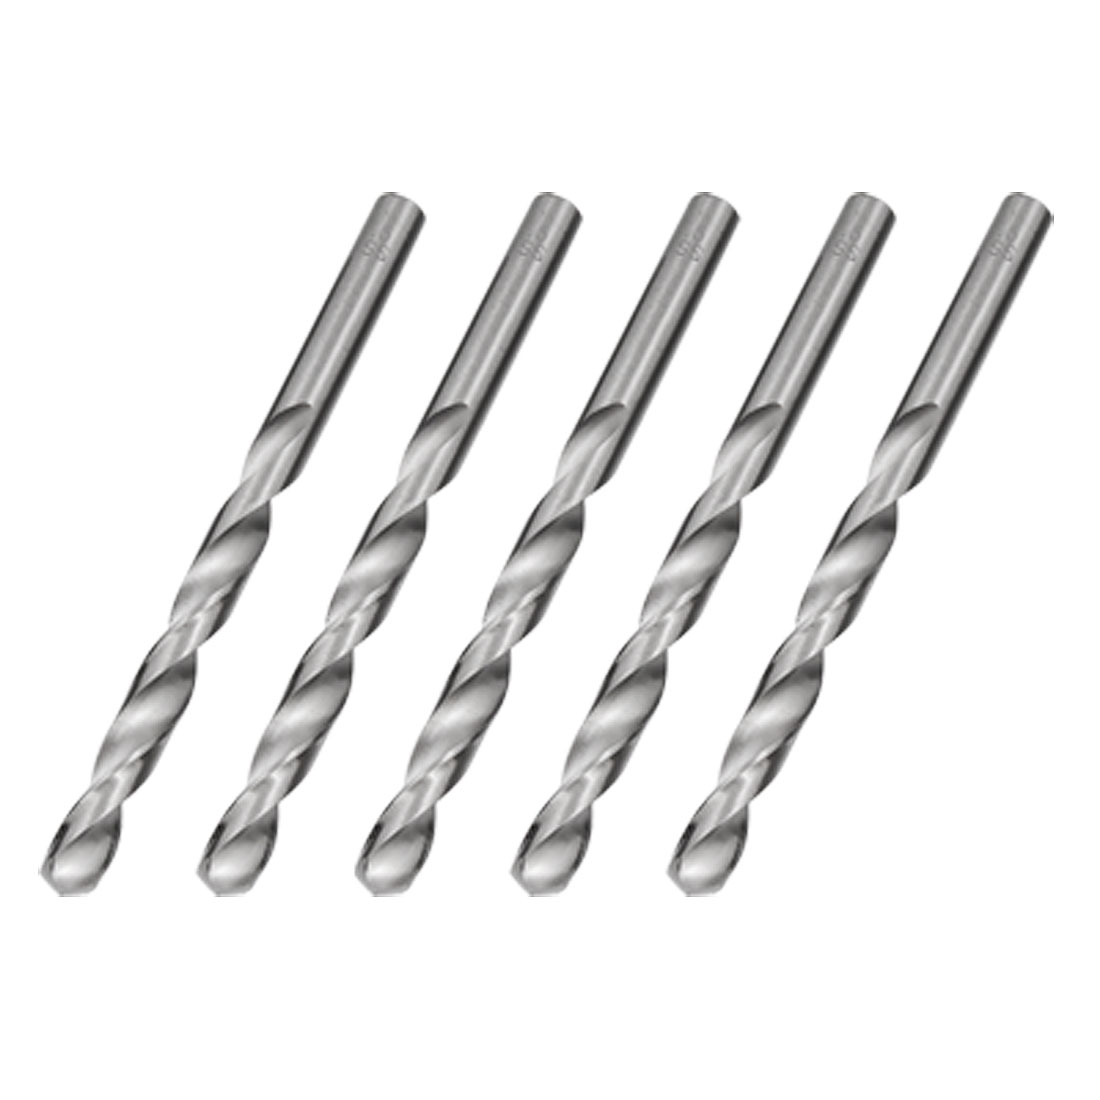 5 pcs 7.5mm Straight Shank Twist Drill Bit Boring Tool